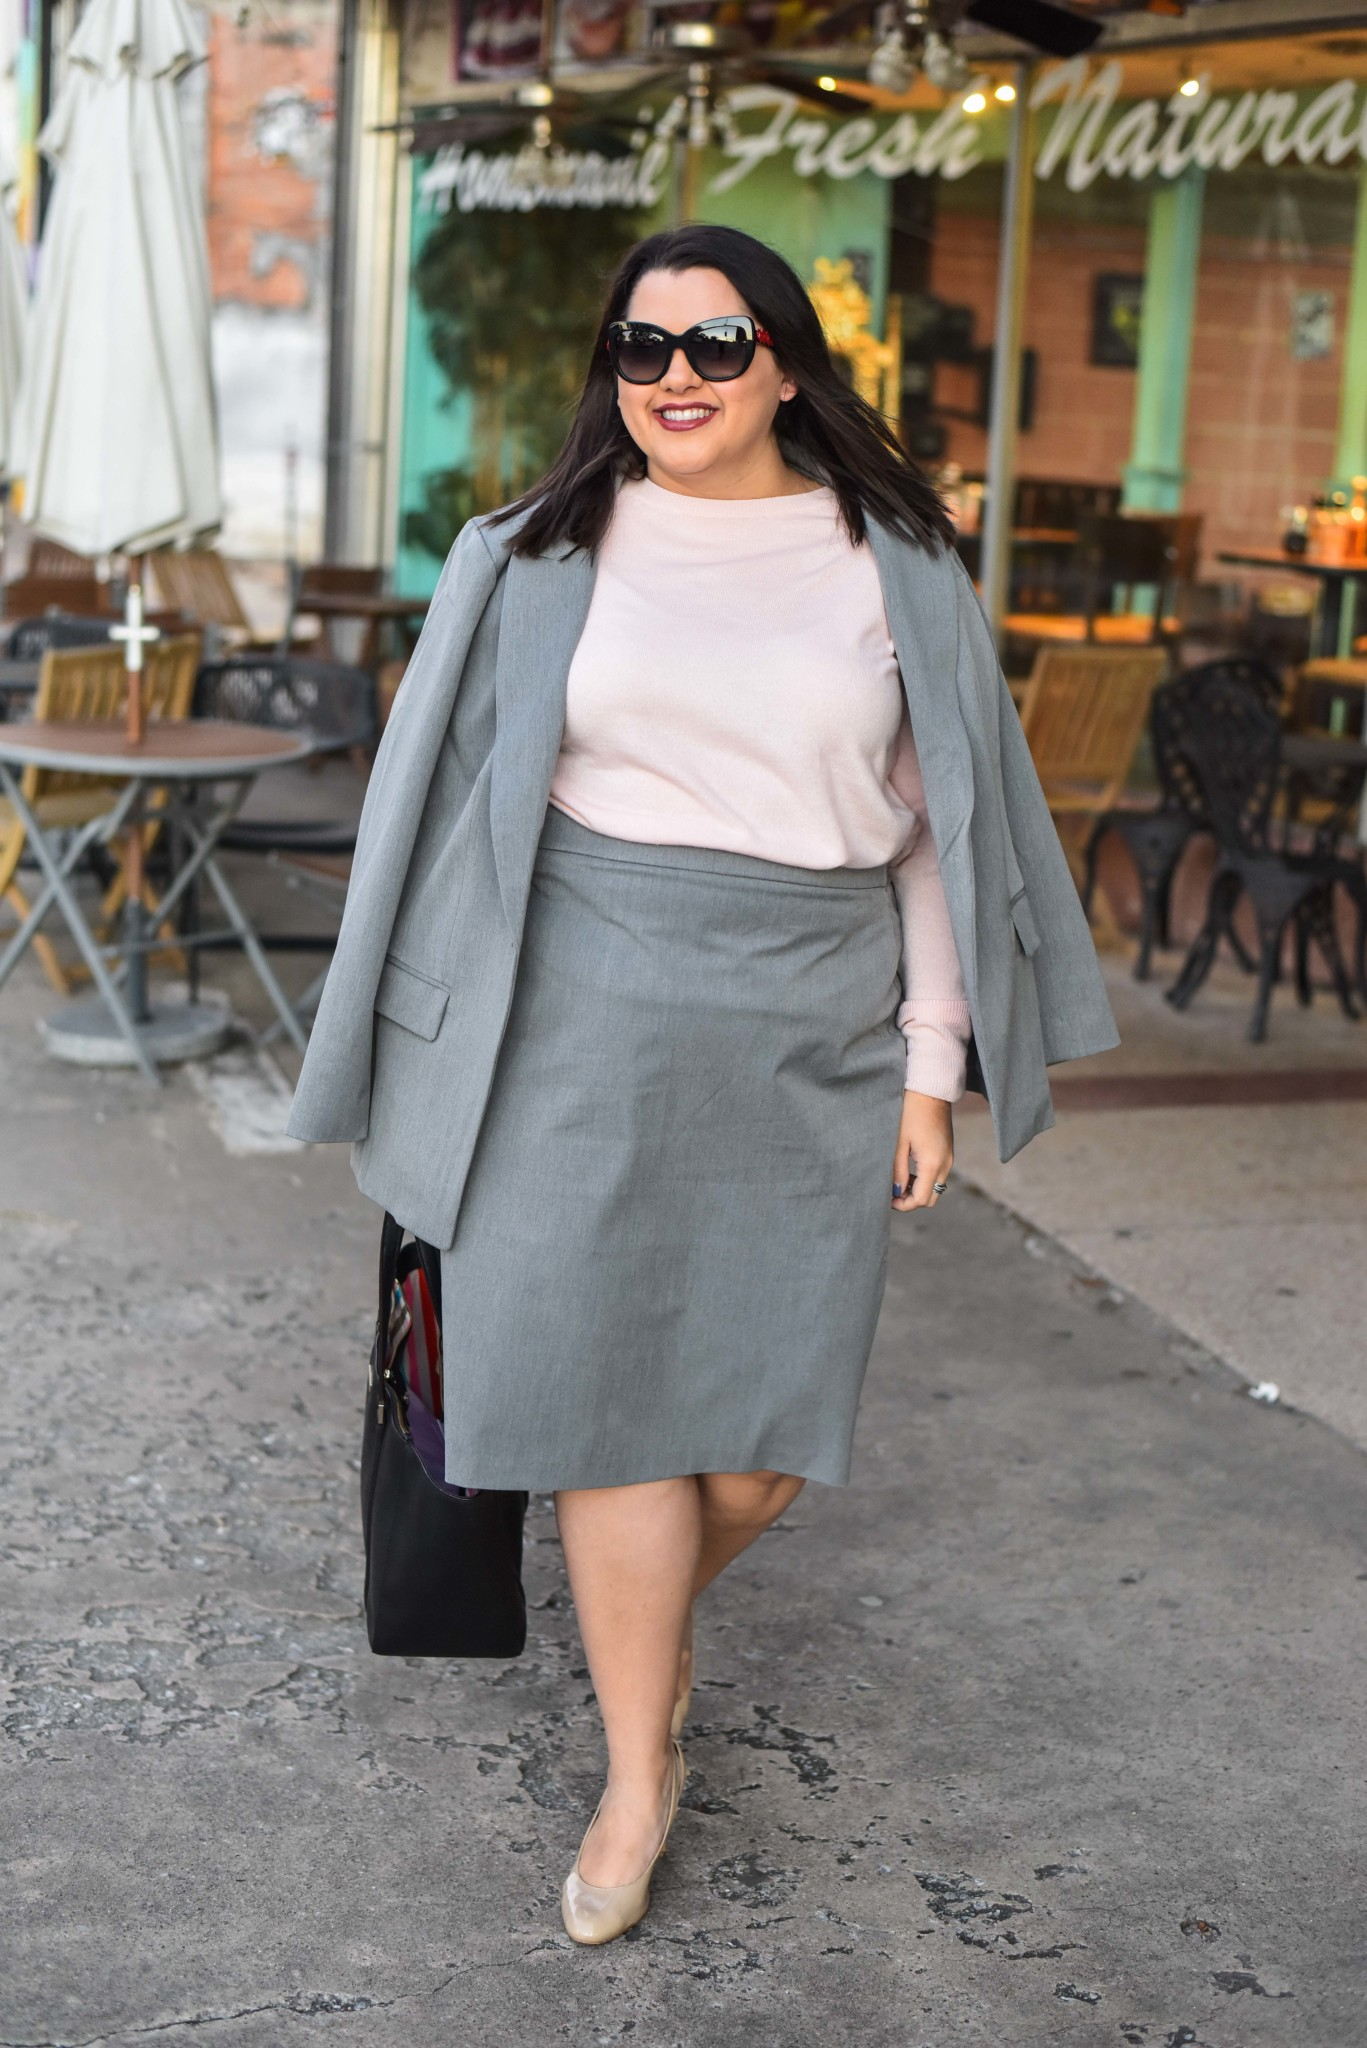 Walking into a new work week in Eloquii's Premier Workwear collection #plussizeworkstyle